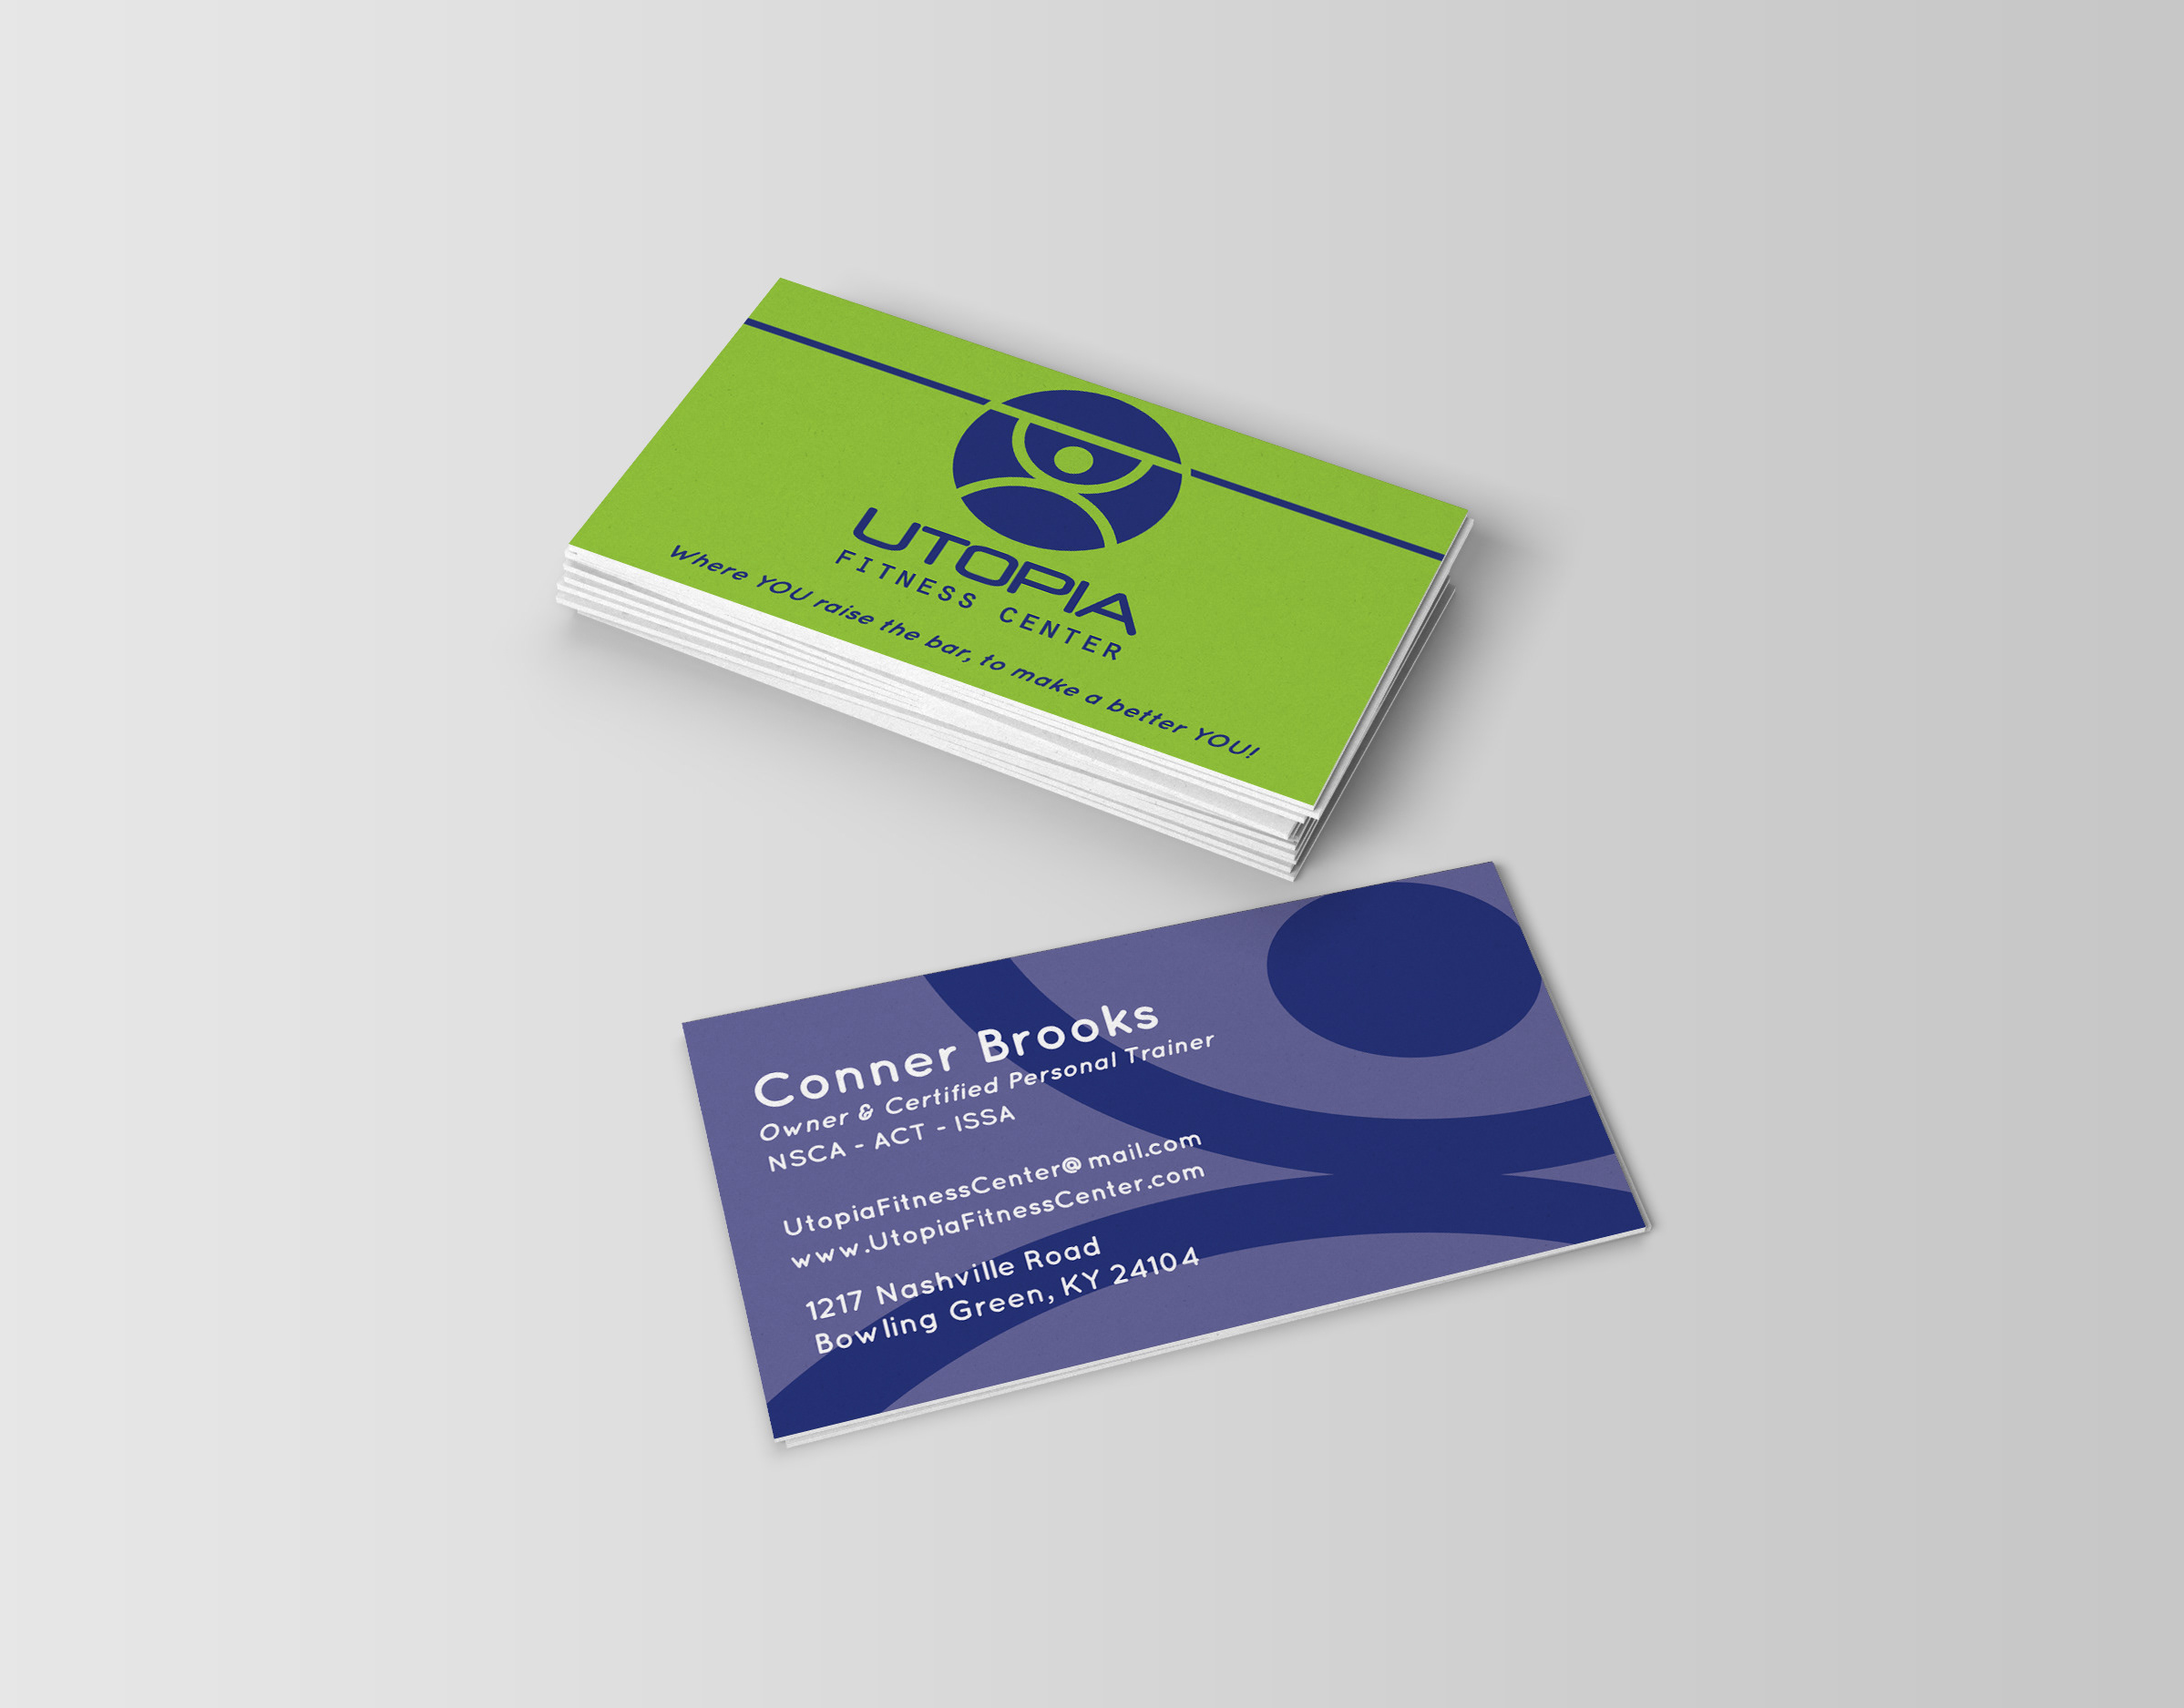 personal trainer business cards ideas